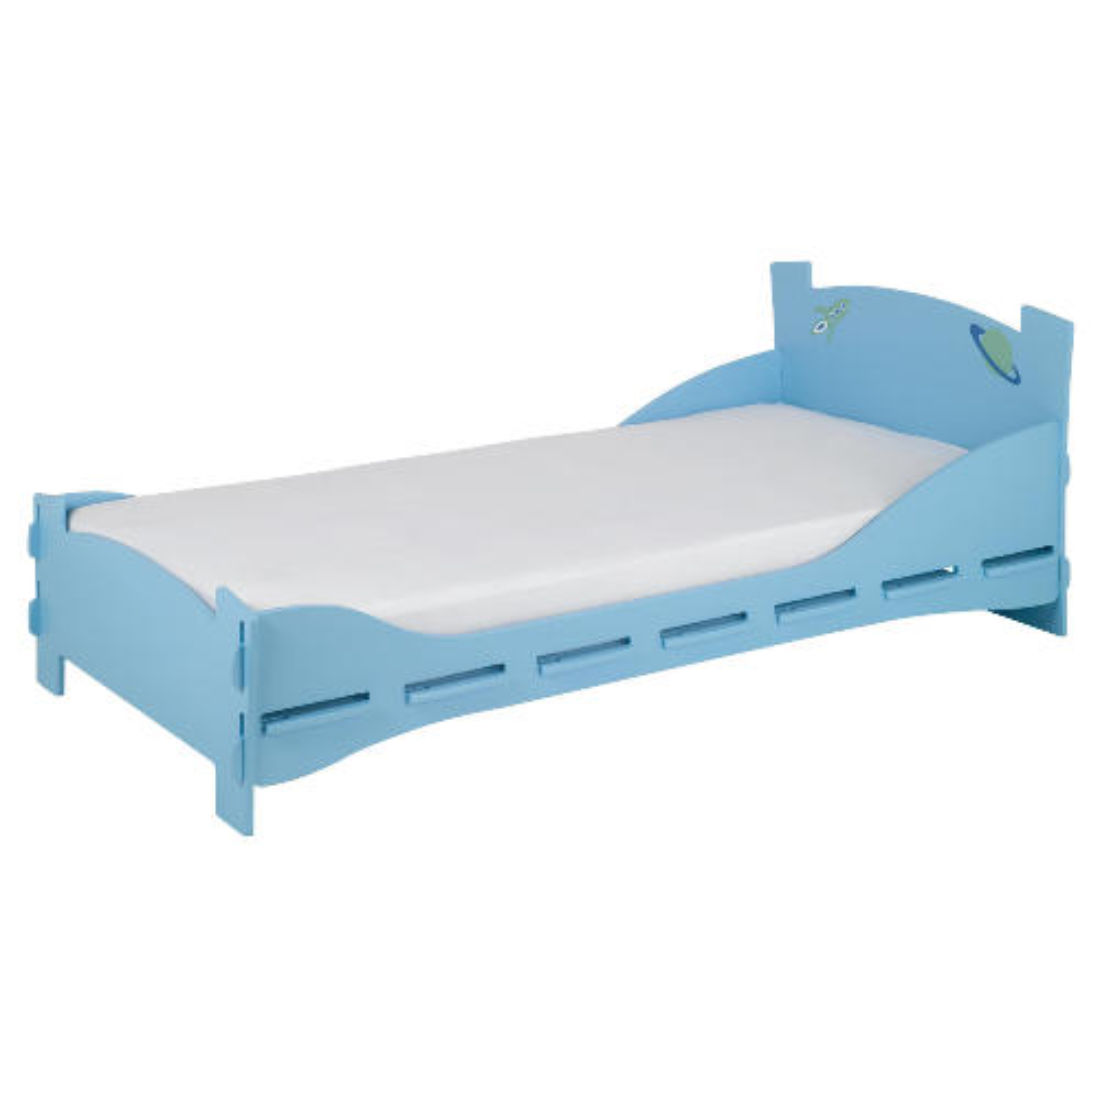 Mattress to fit Space Age Single Bed mattress size is